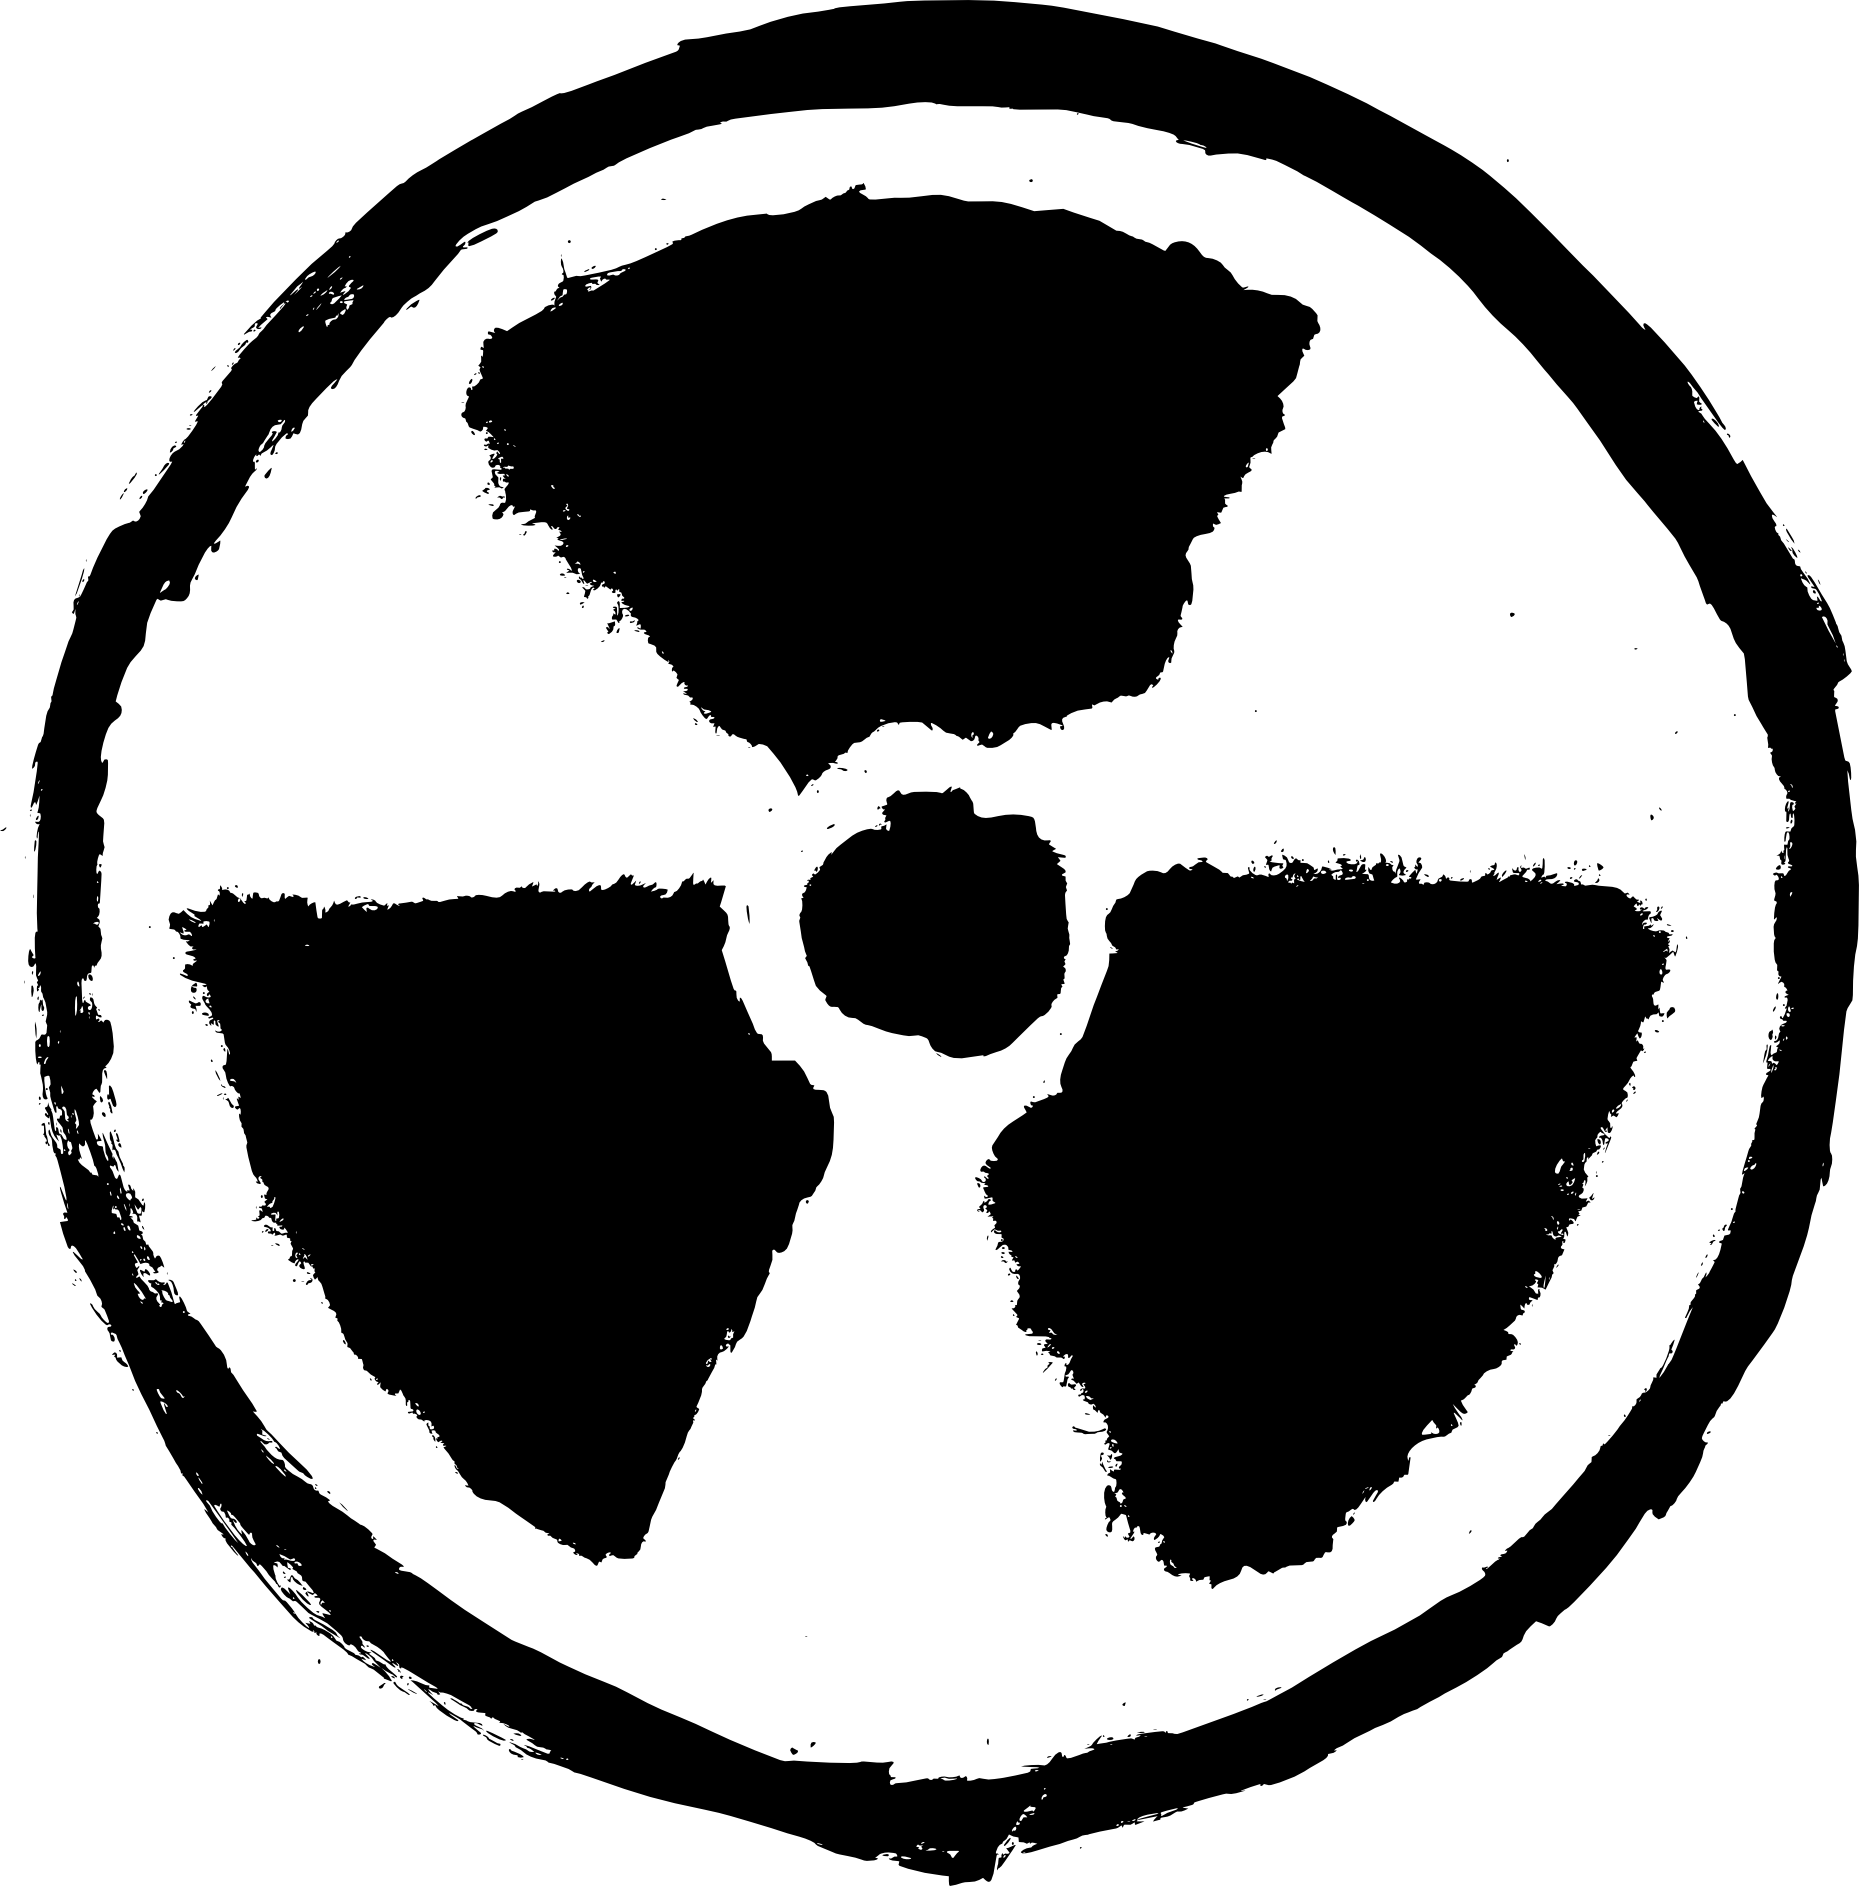 4 Grunge Radioactive Sign (PNG Transparent) | OnlyGFX.com